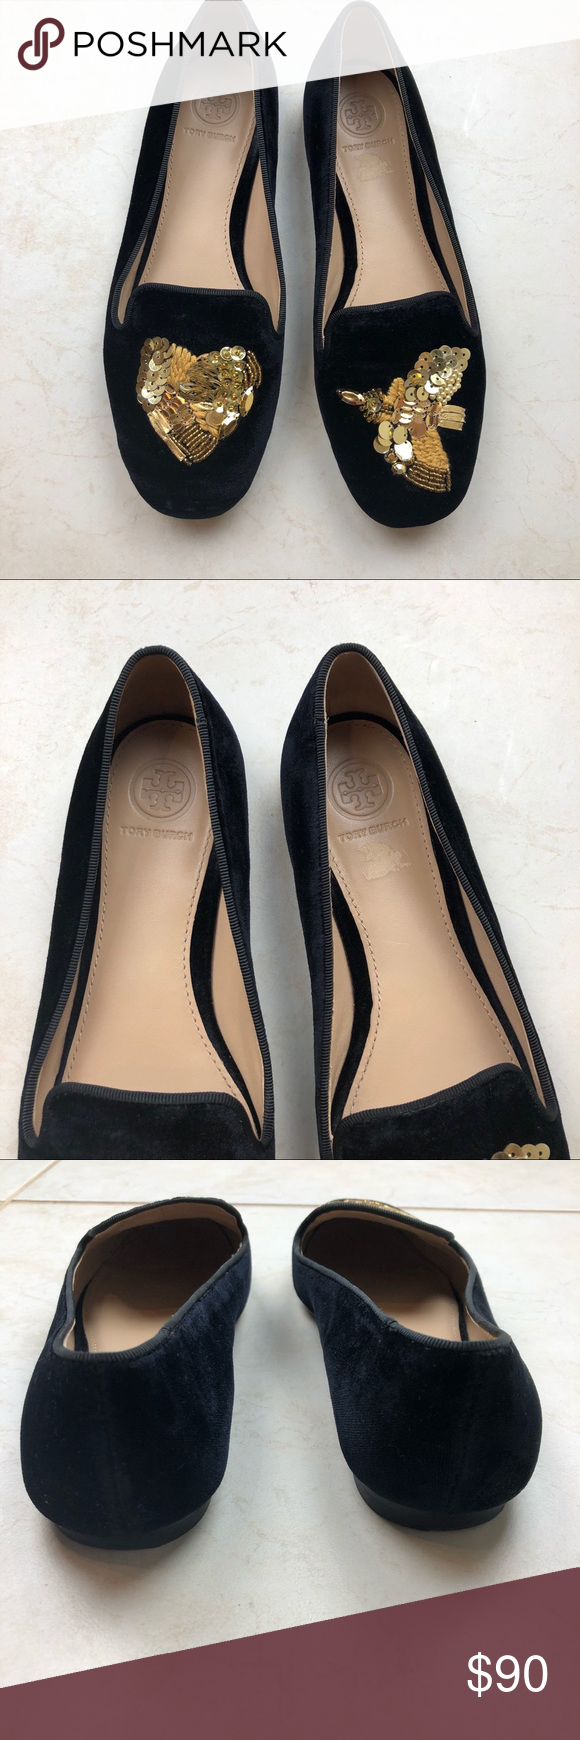 0f2886933cb Tory Burch Peace Smoking Slipper velvet loafer 7 Gently used Peace Smoking  Skipper by Tory Burch